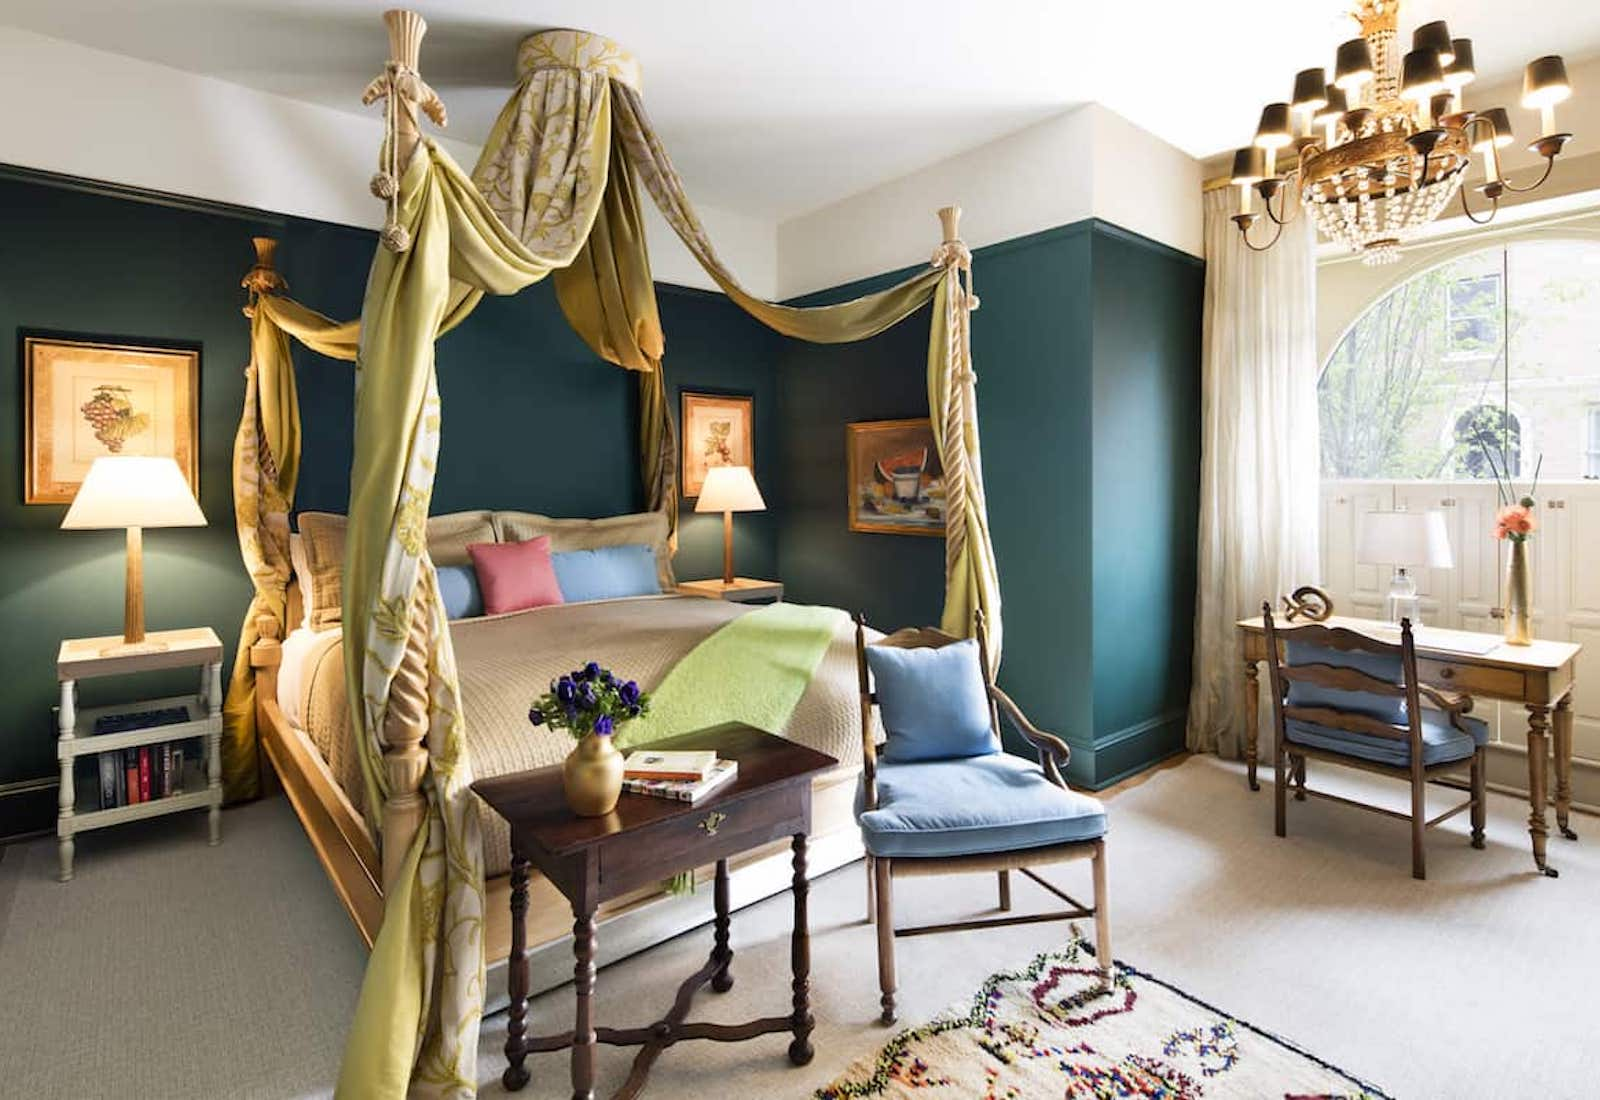 The Ivy, Black Owned Hotel, African American Travel, Black Travel, African Travel, KOLUMN Magazine, KOLUMN, KINDR'D Magazine, KINDR'D, Willoughby Avenue, Wriit,